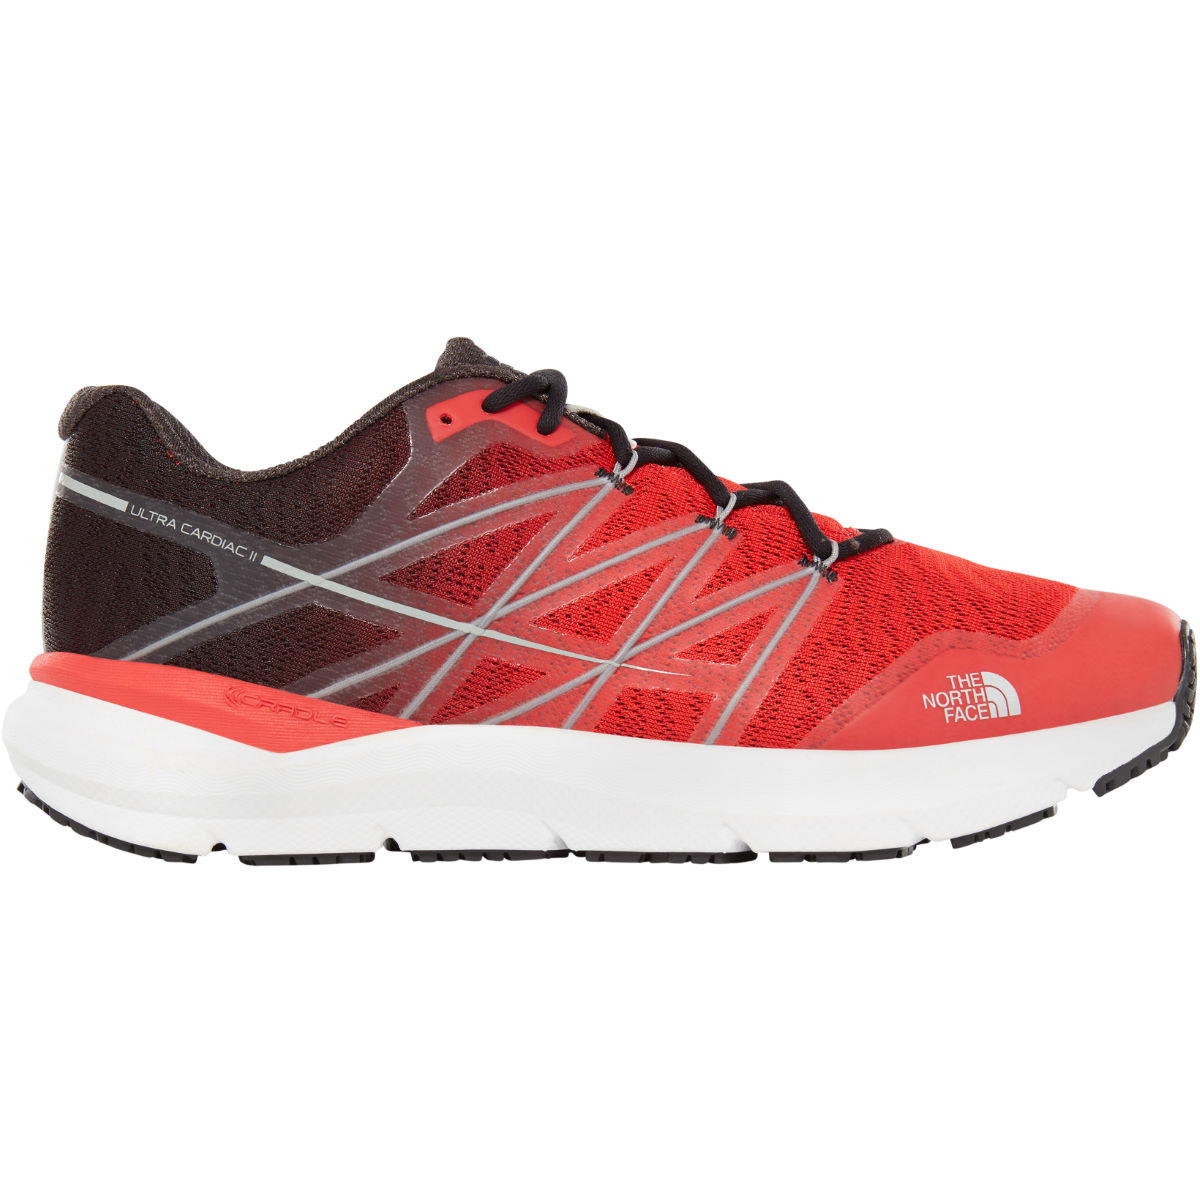 The North Face The North Face Ultra Cardiac II Shoes   Trail Shoes